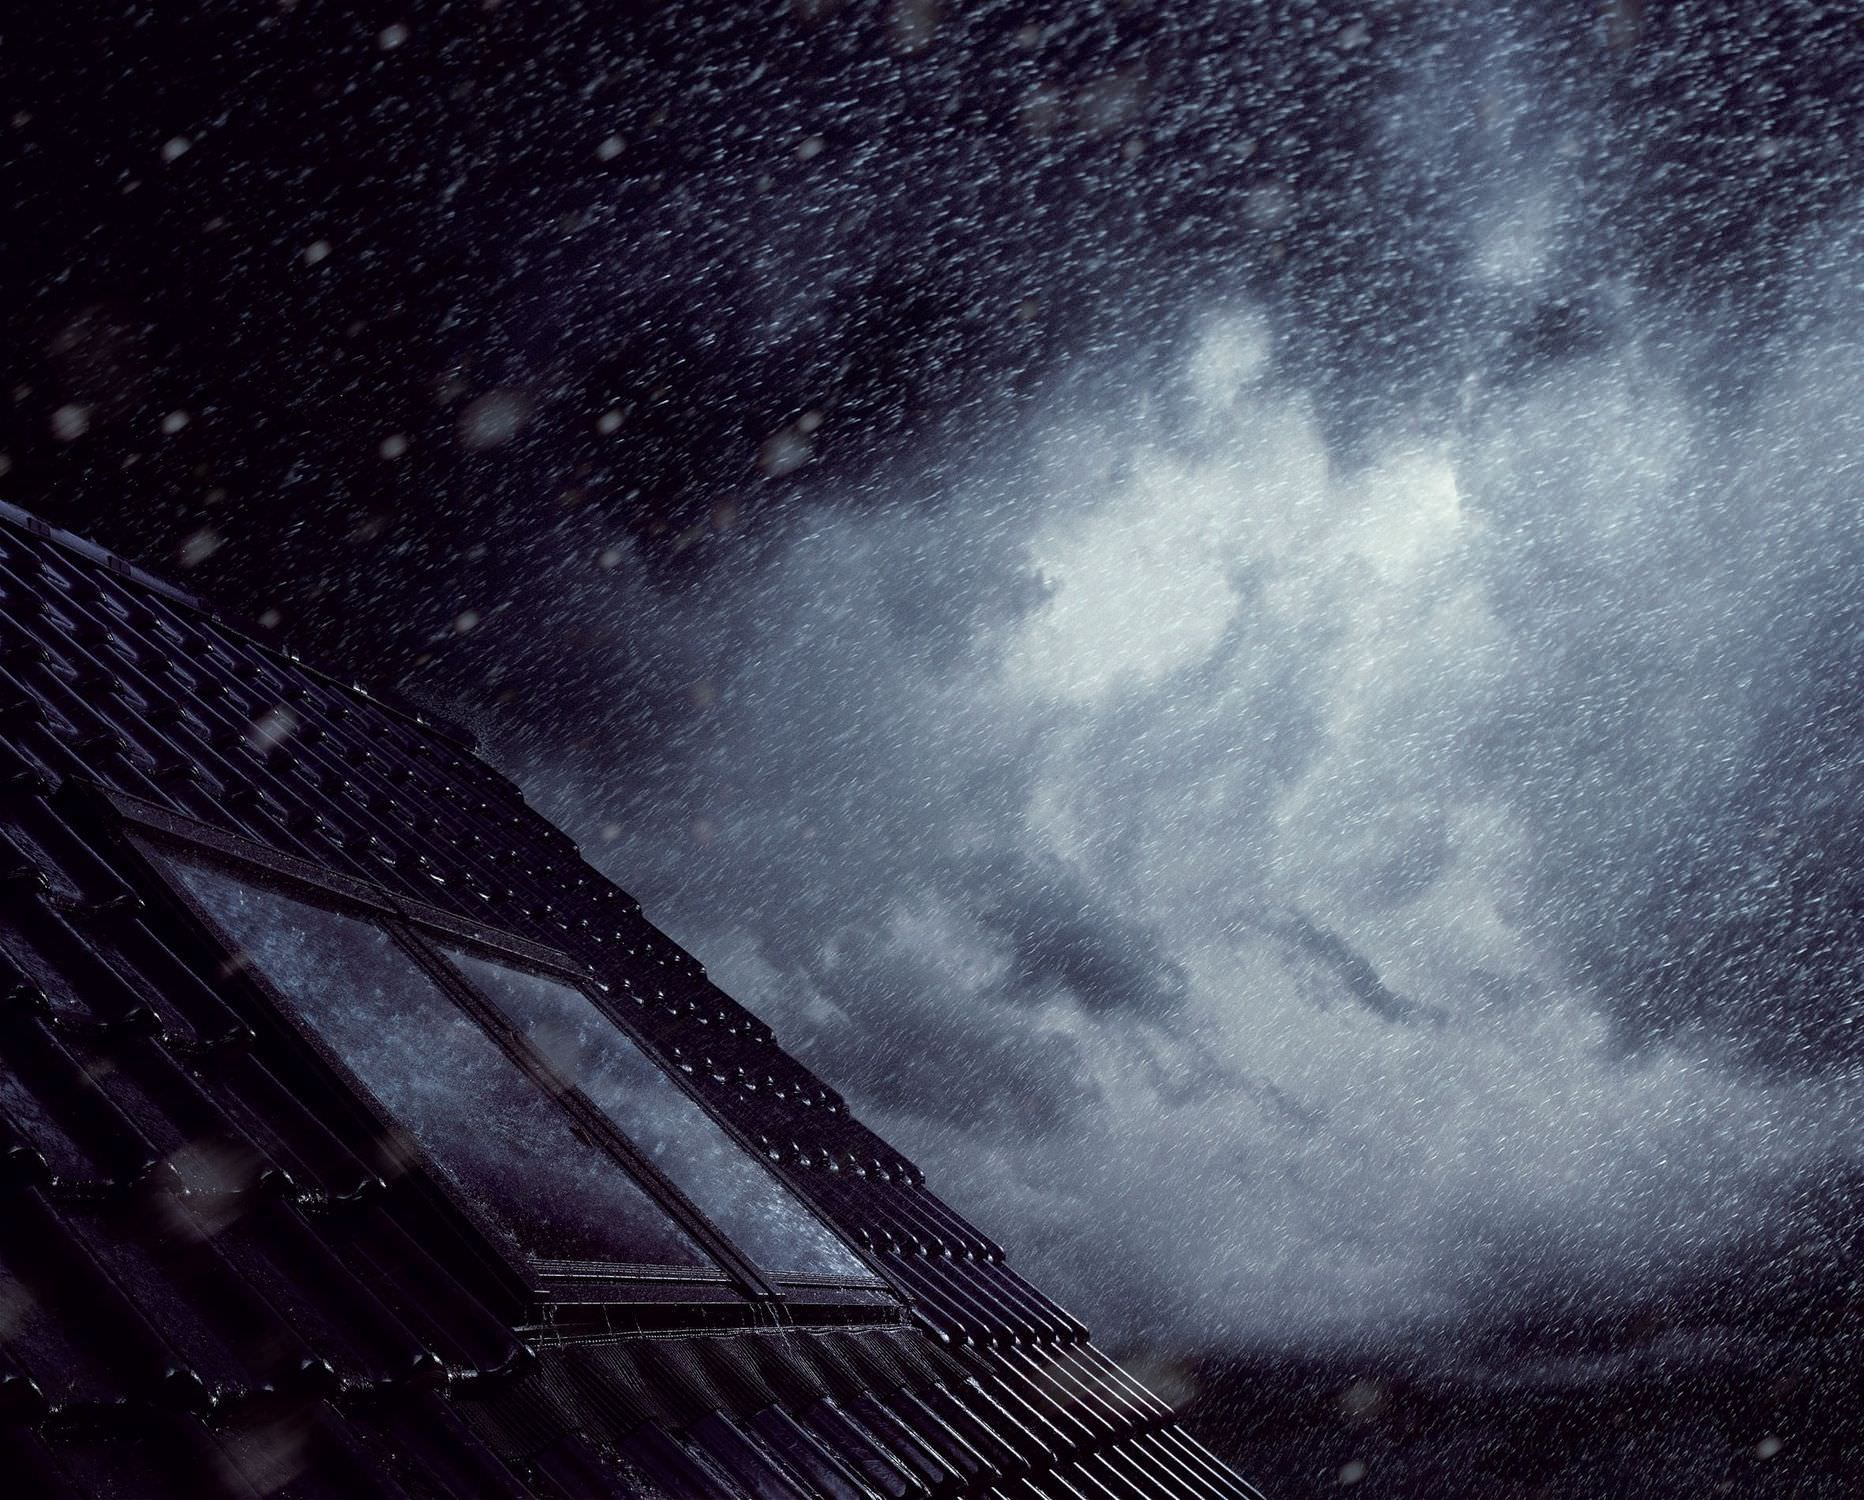 The sound of rain on the roof....